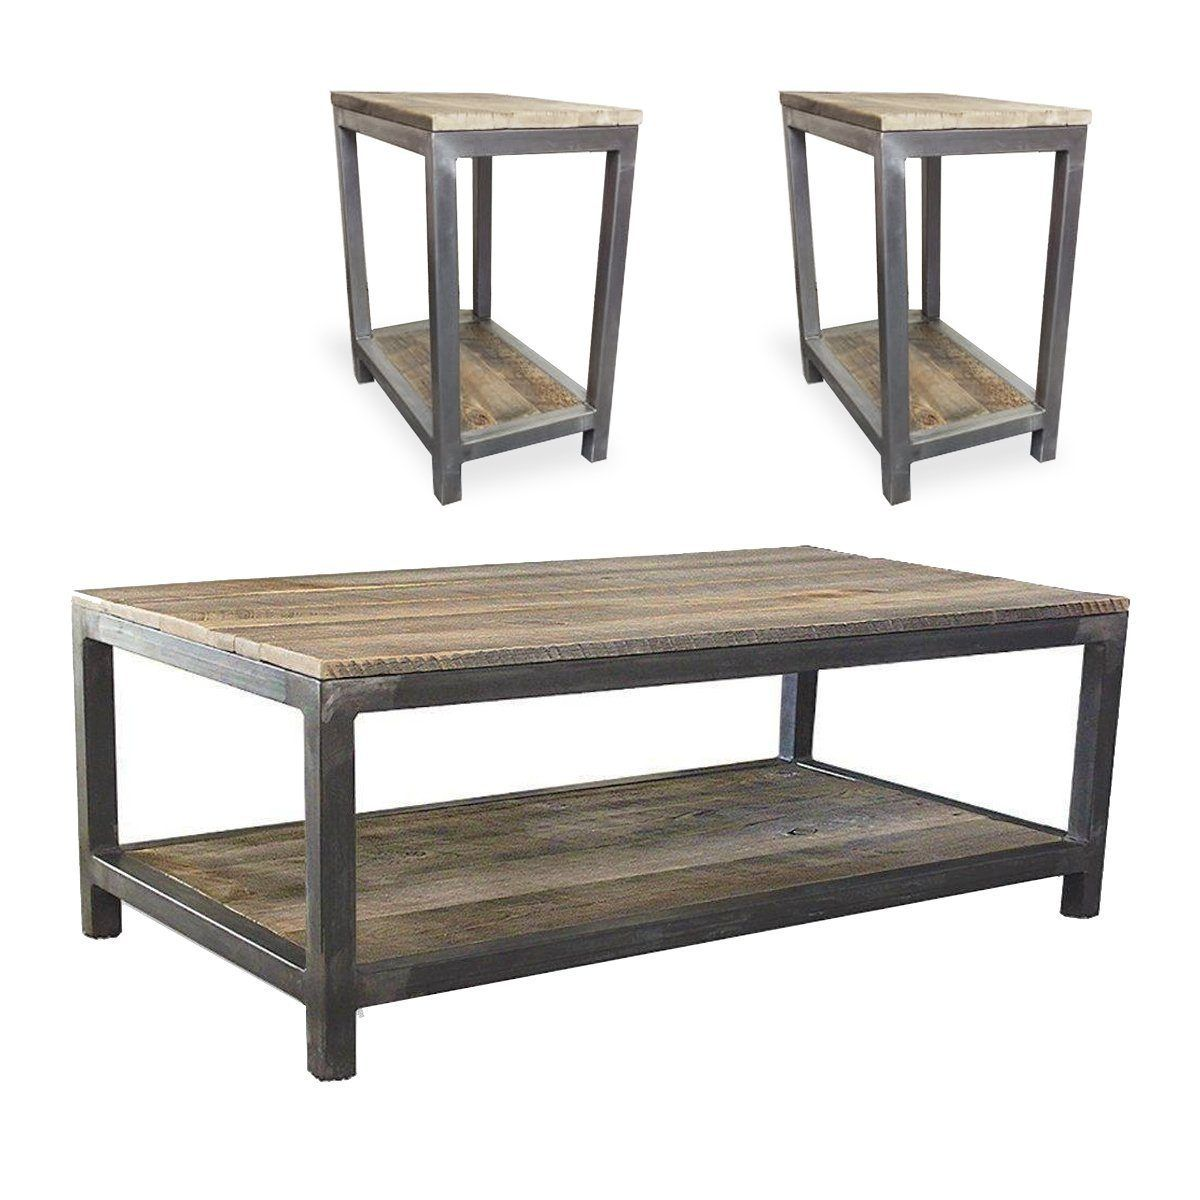 Reclaimed Wood And Metal Coffee And End Tables Set Two Tier